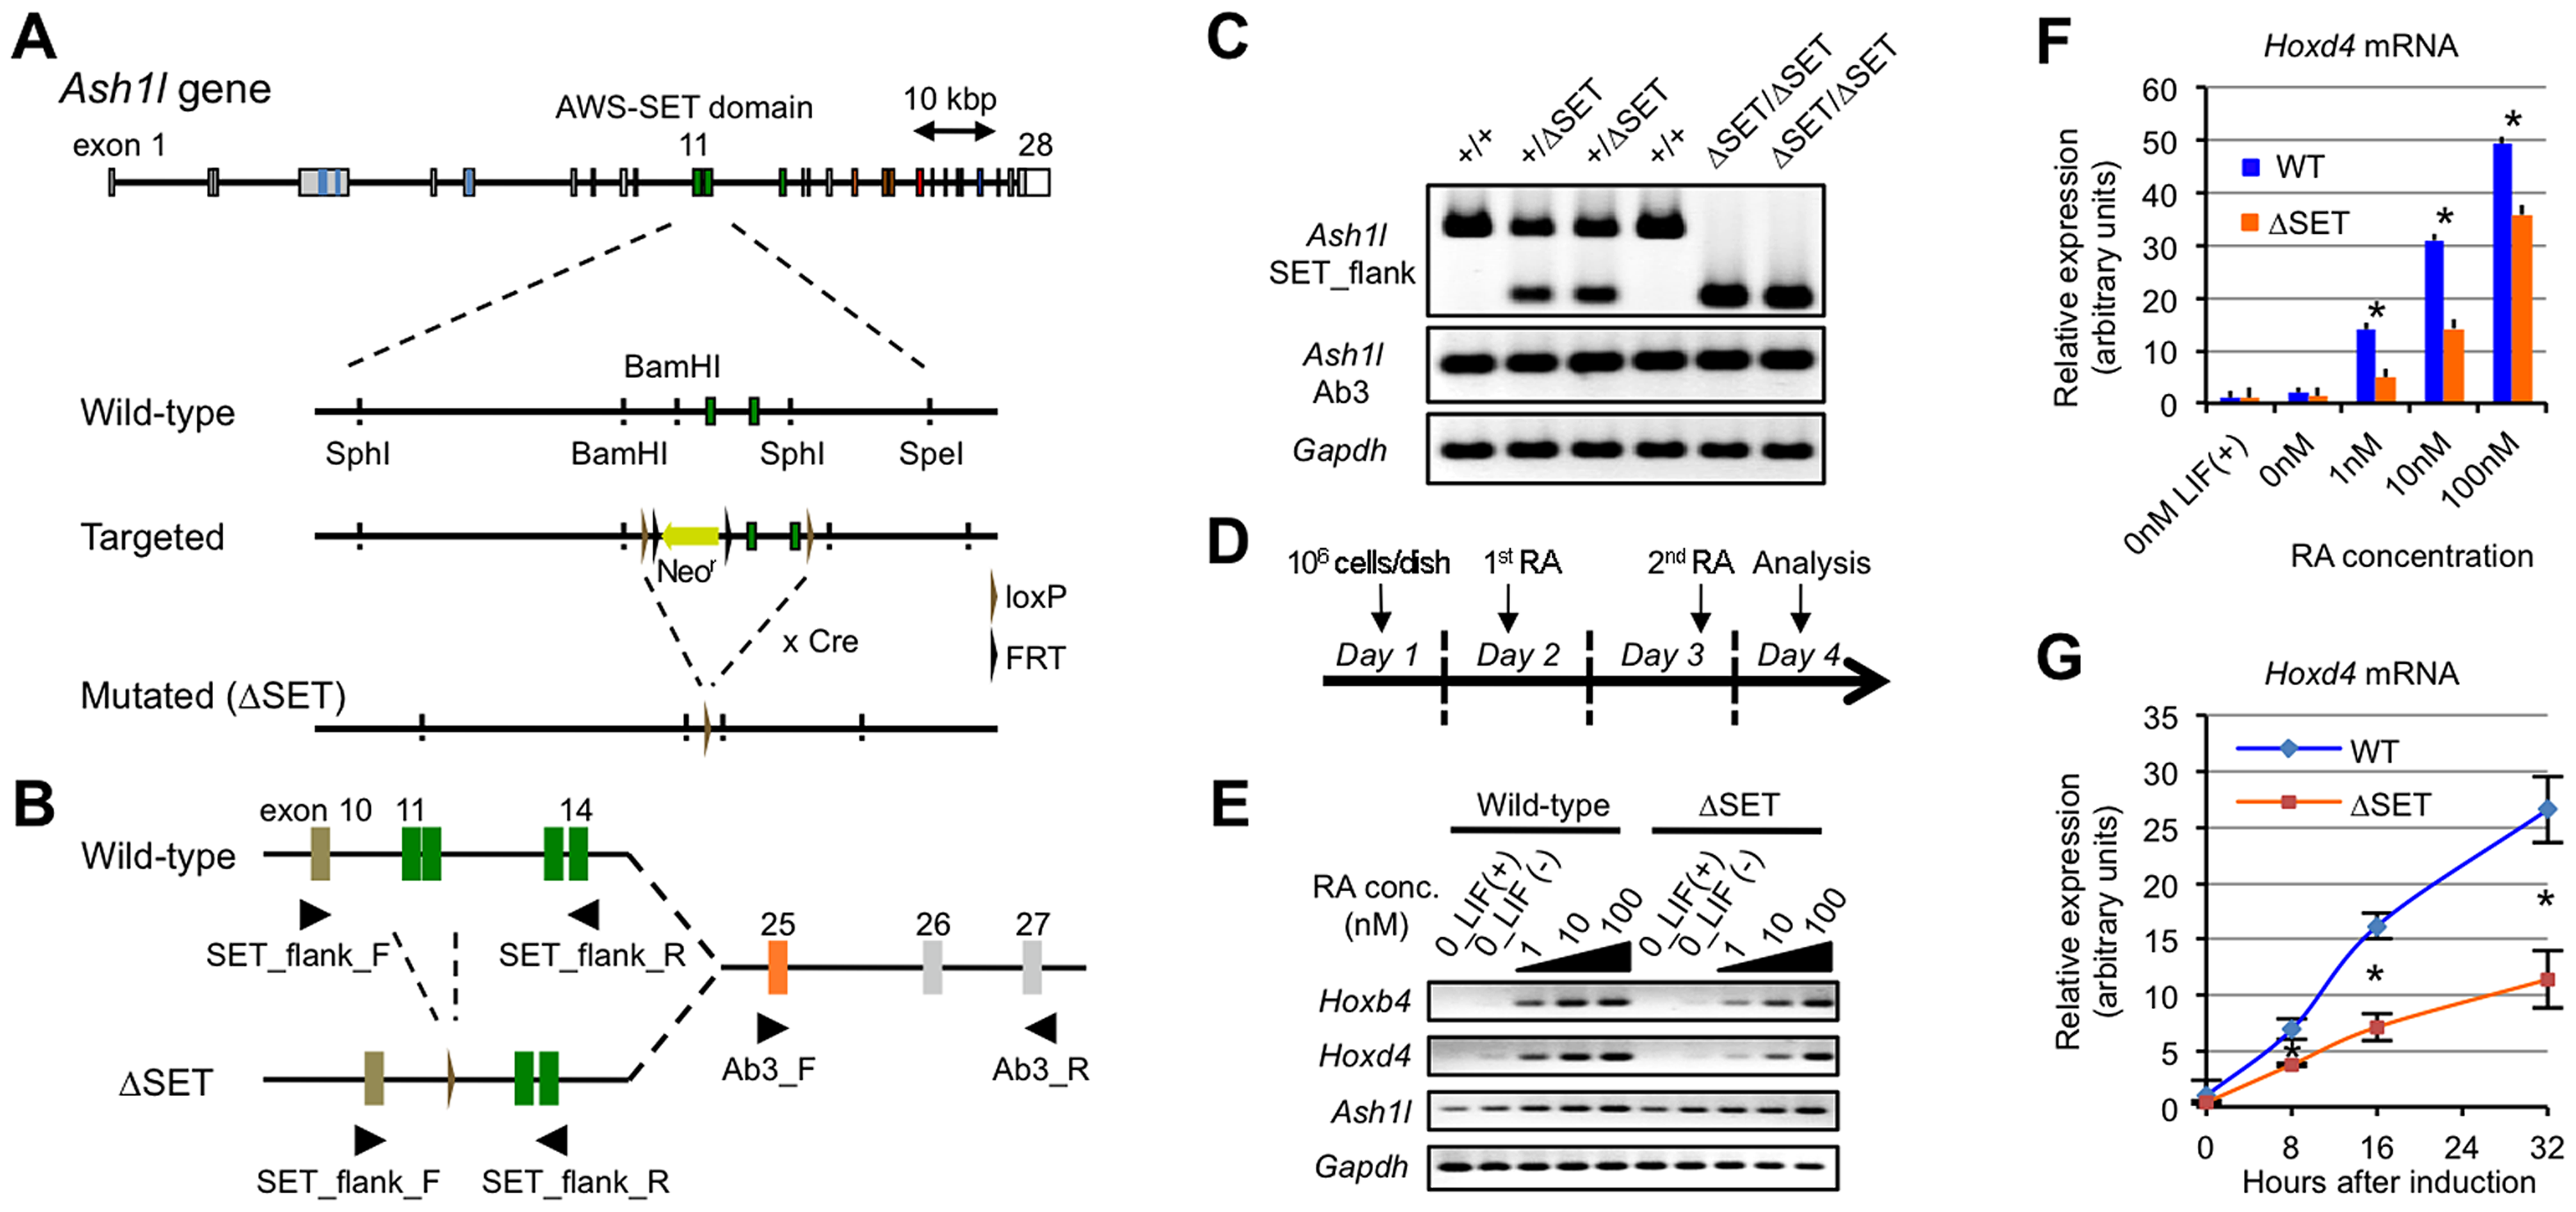 Basic characterization of Ash1l mutant ES cells and Hox gene expression in response to RA.